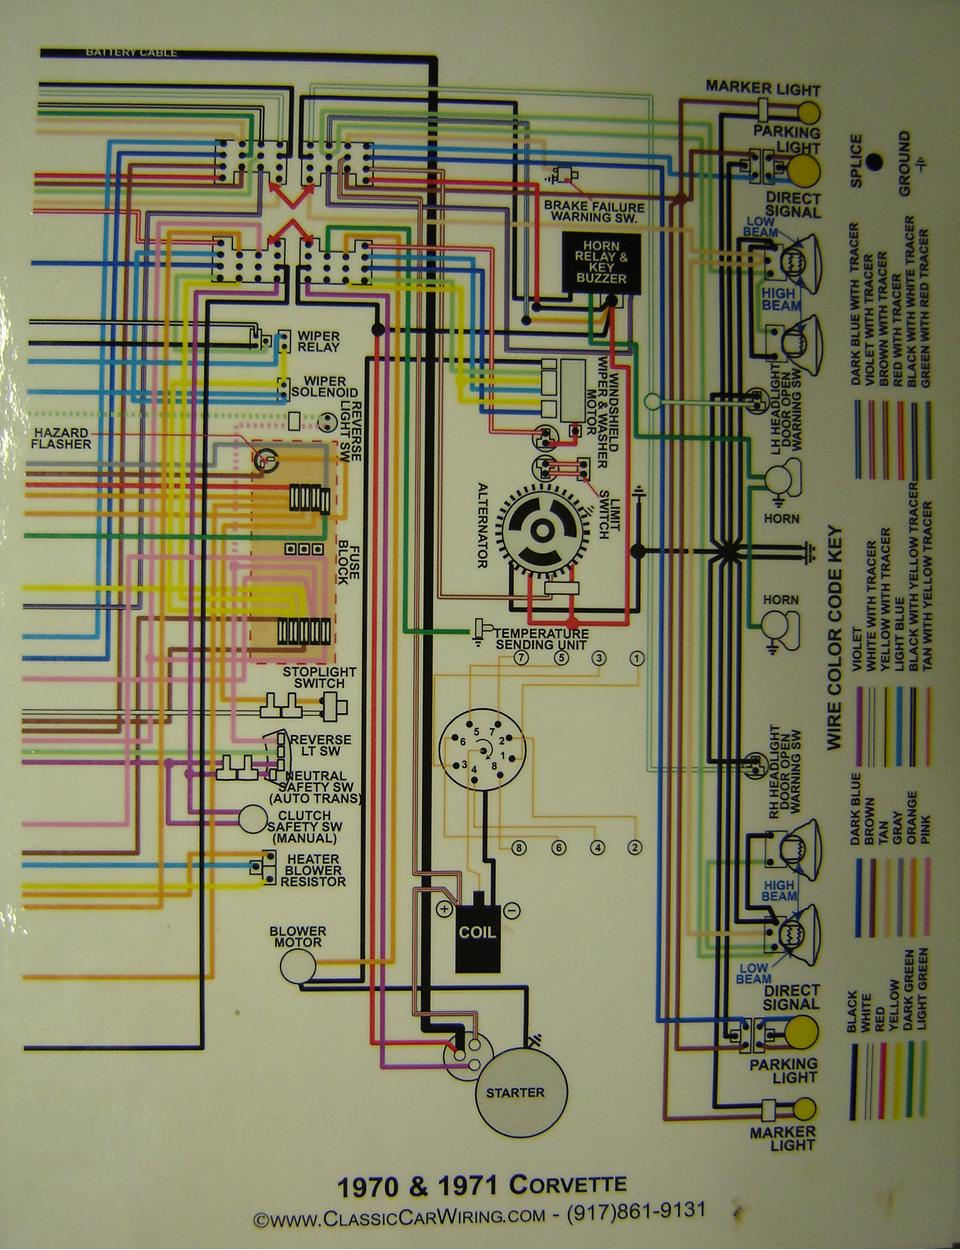 1969 Pontiac Firebird together with Wont Start topic7971 page2 additionally Diagram in addition Showthread together with Service. on 1967 chevelle wiring diagram pdf